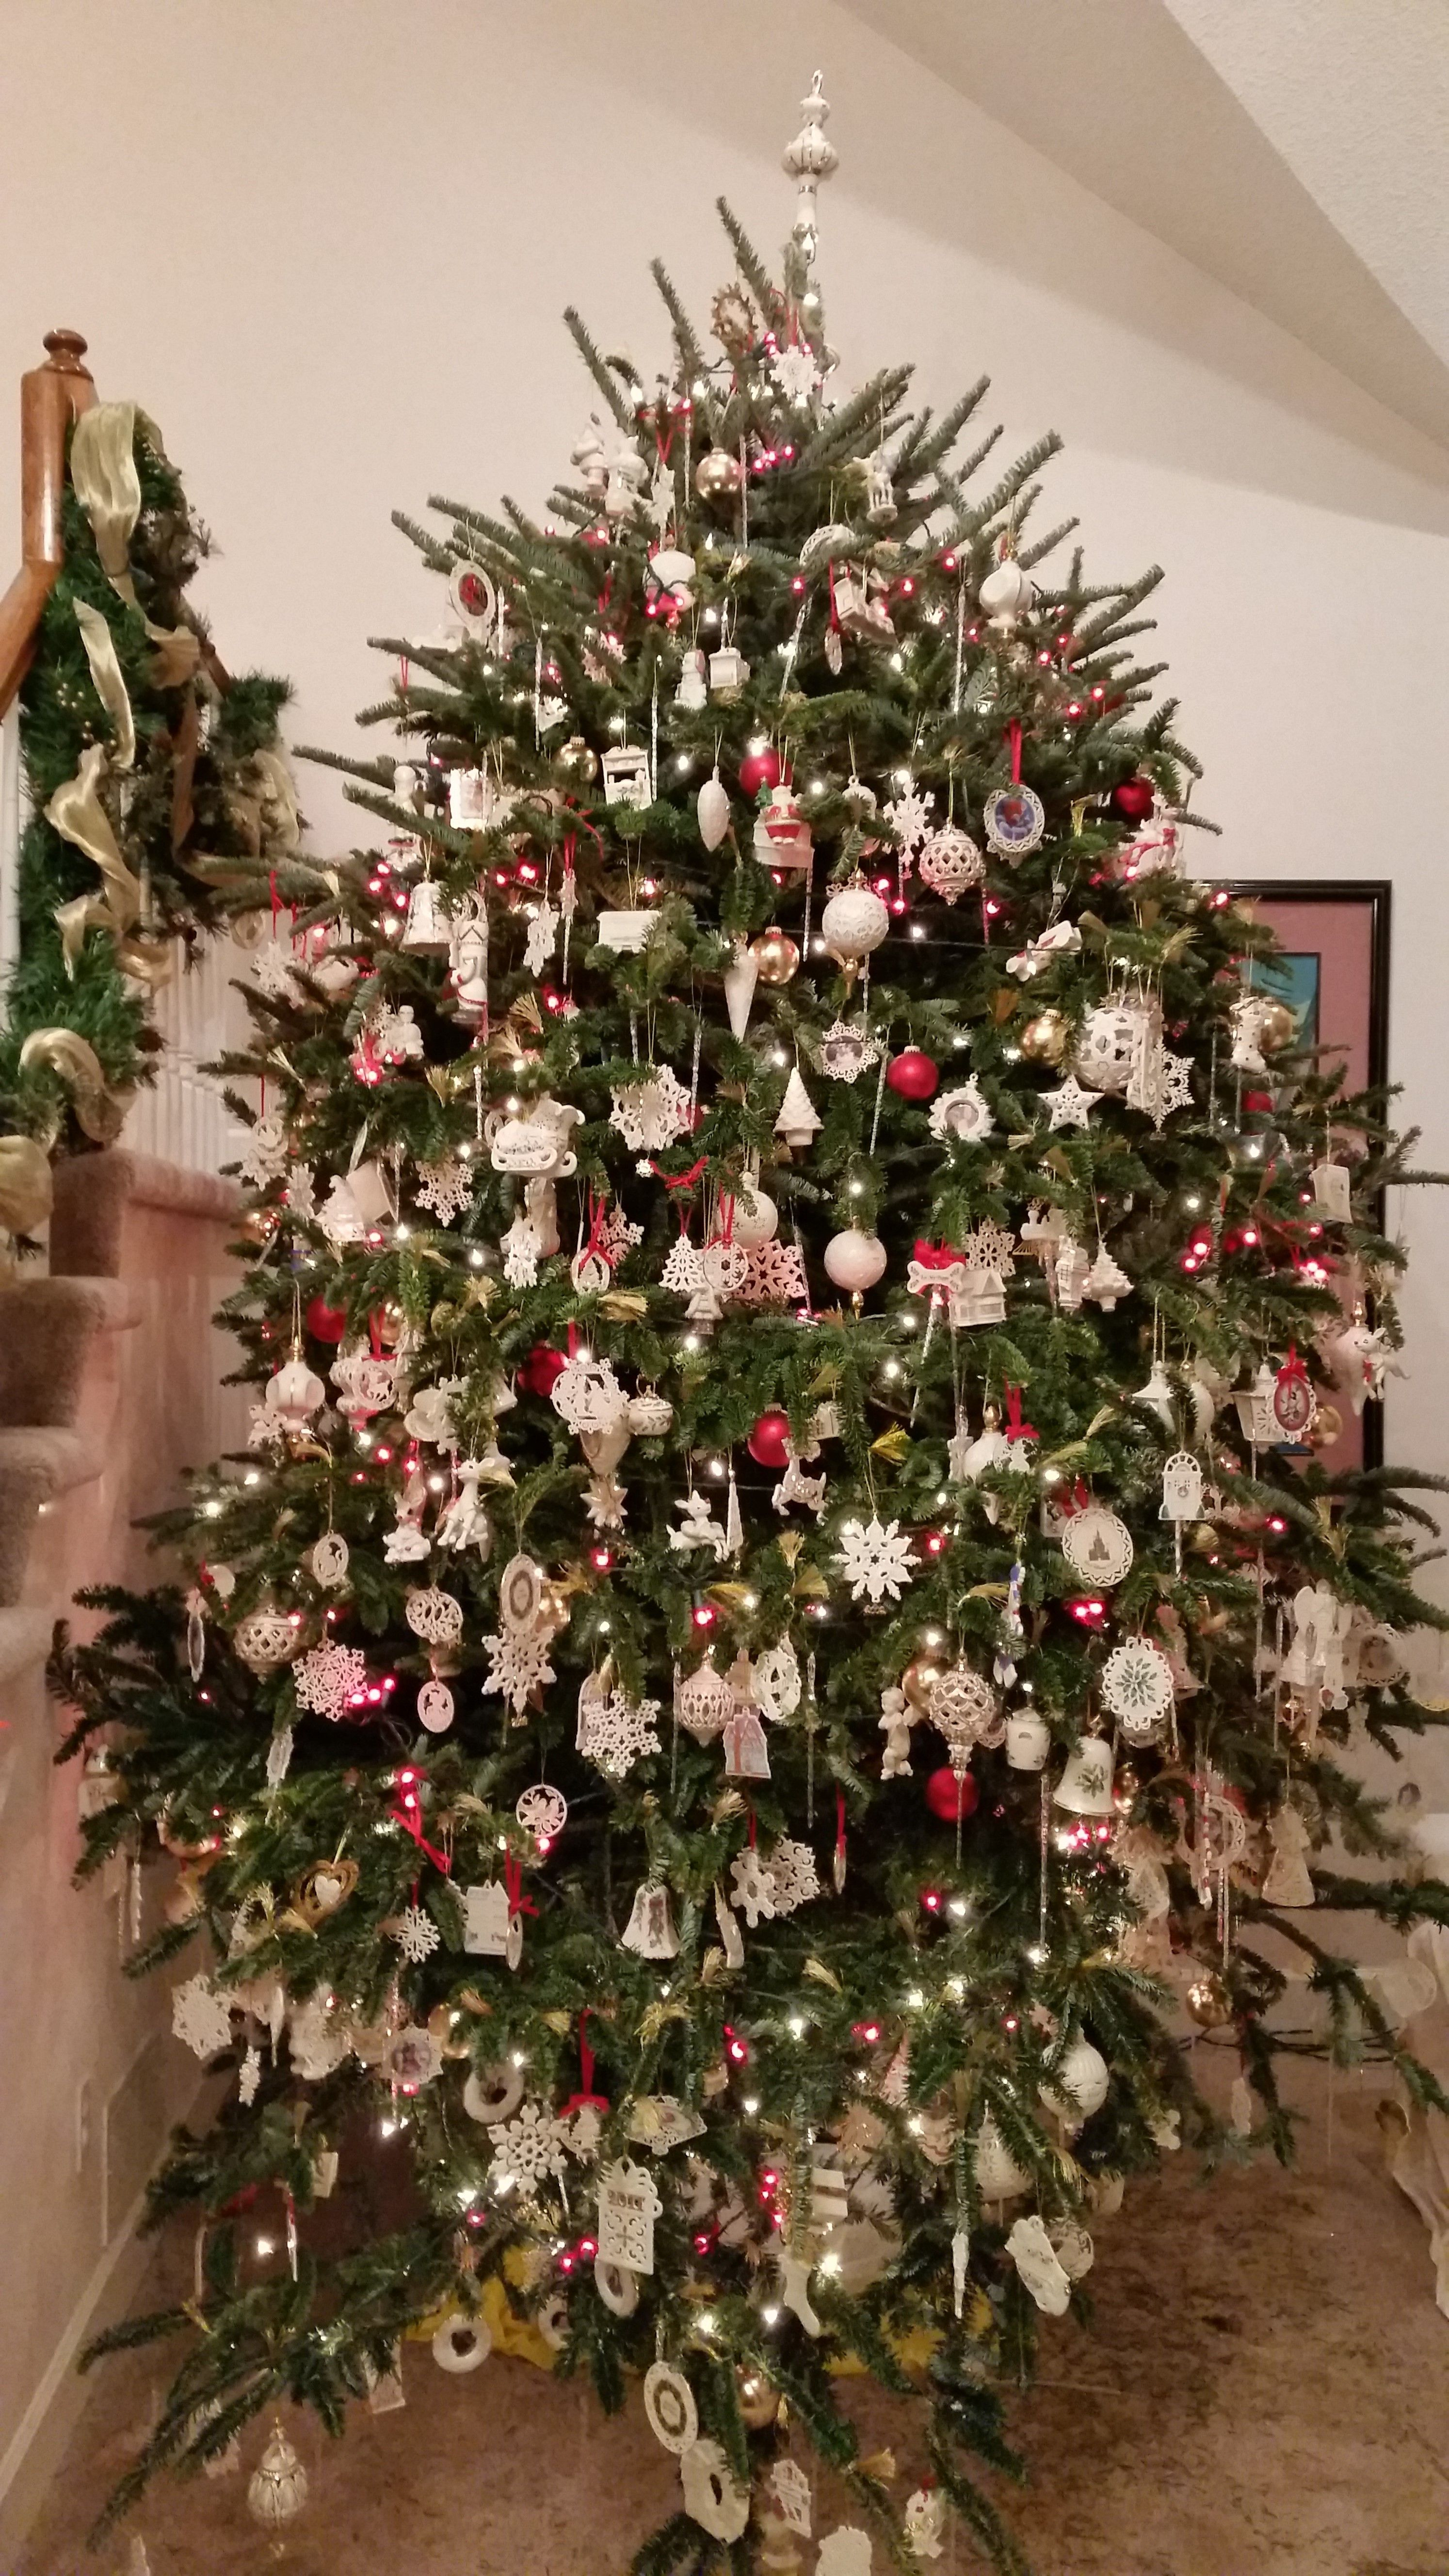 Our 2014 Christmas Tree Covered In Lenox Ornaments